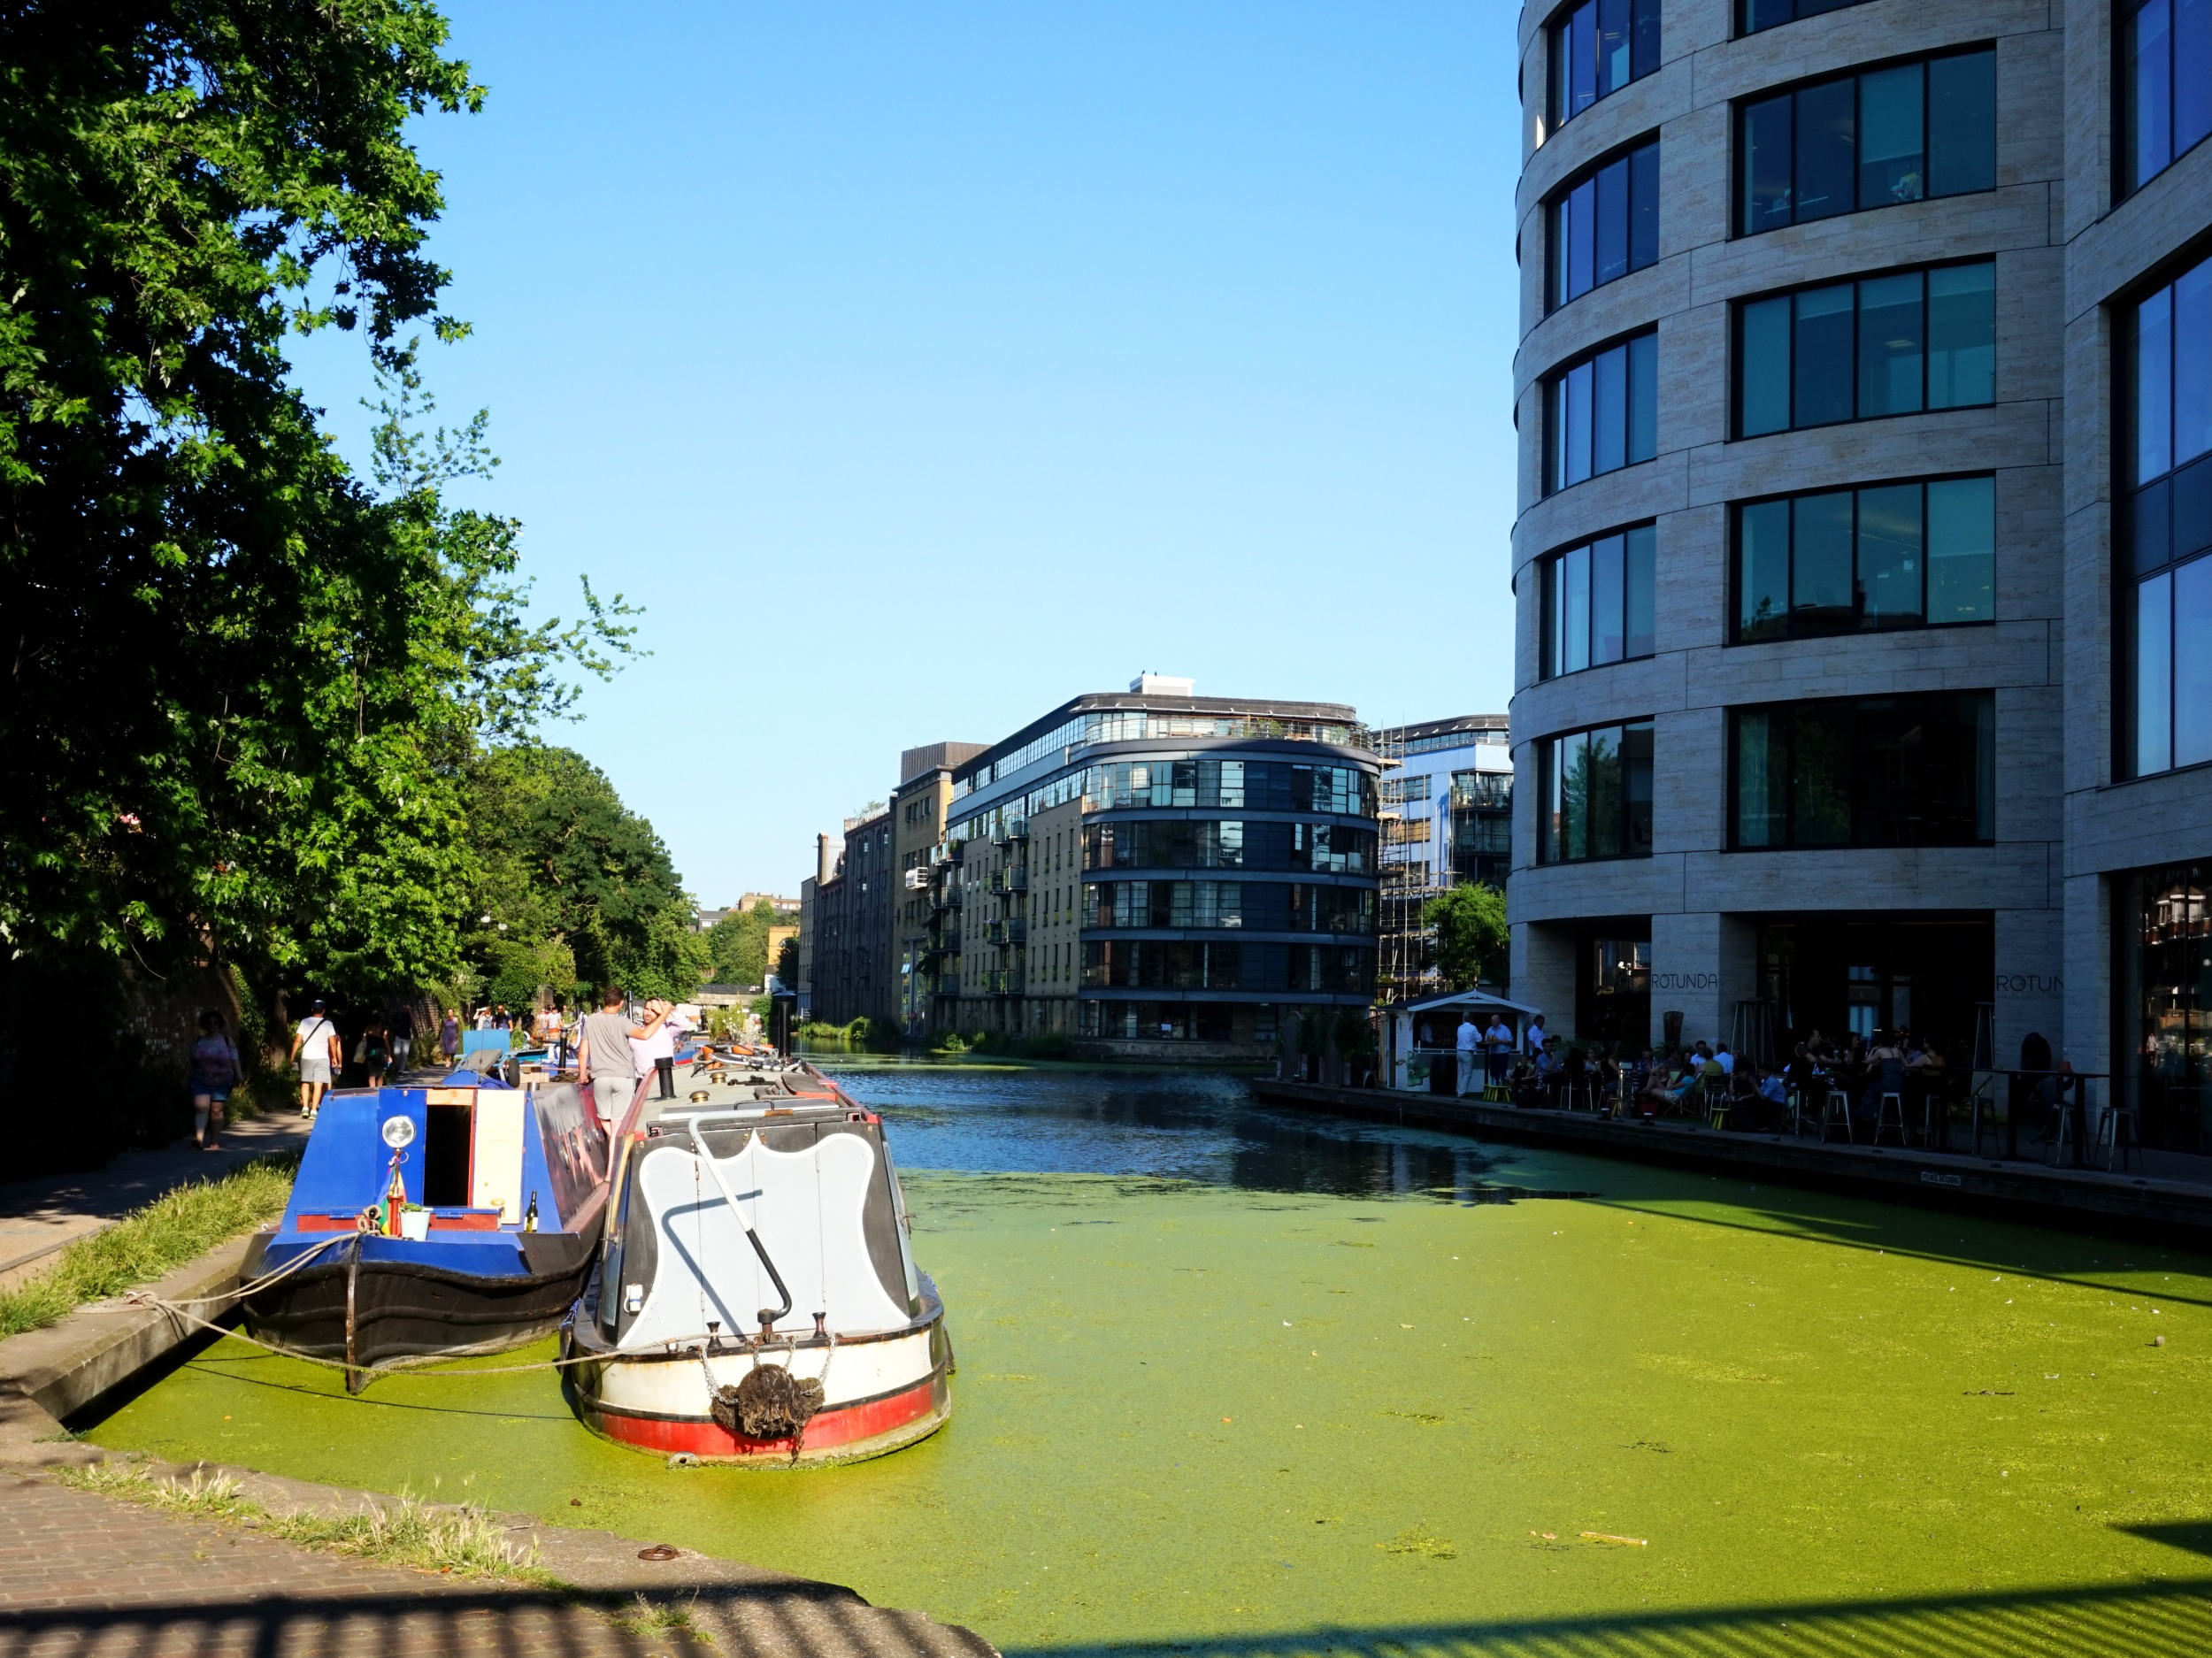 Regents-Canal-72